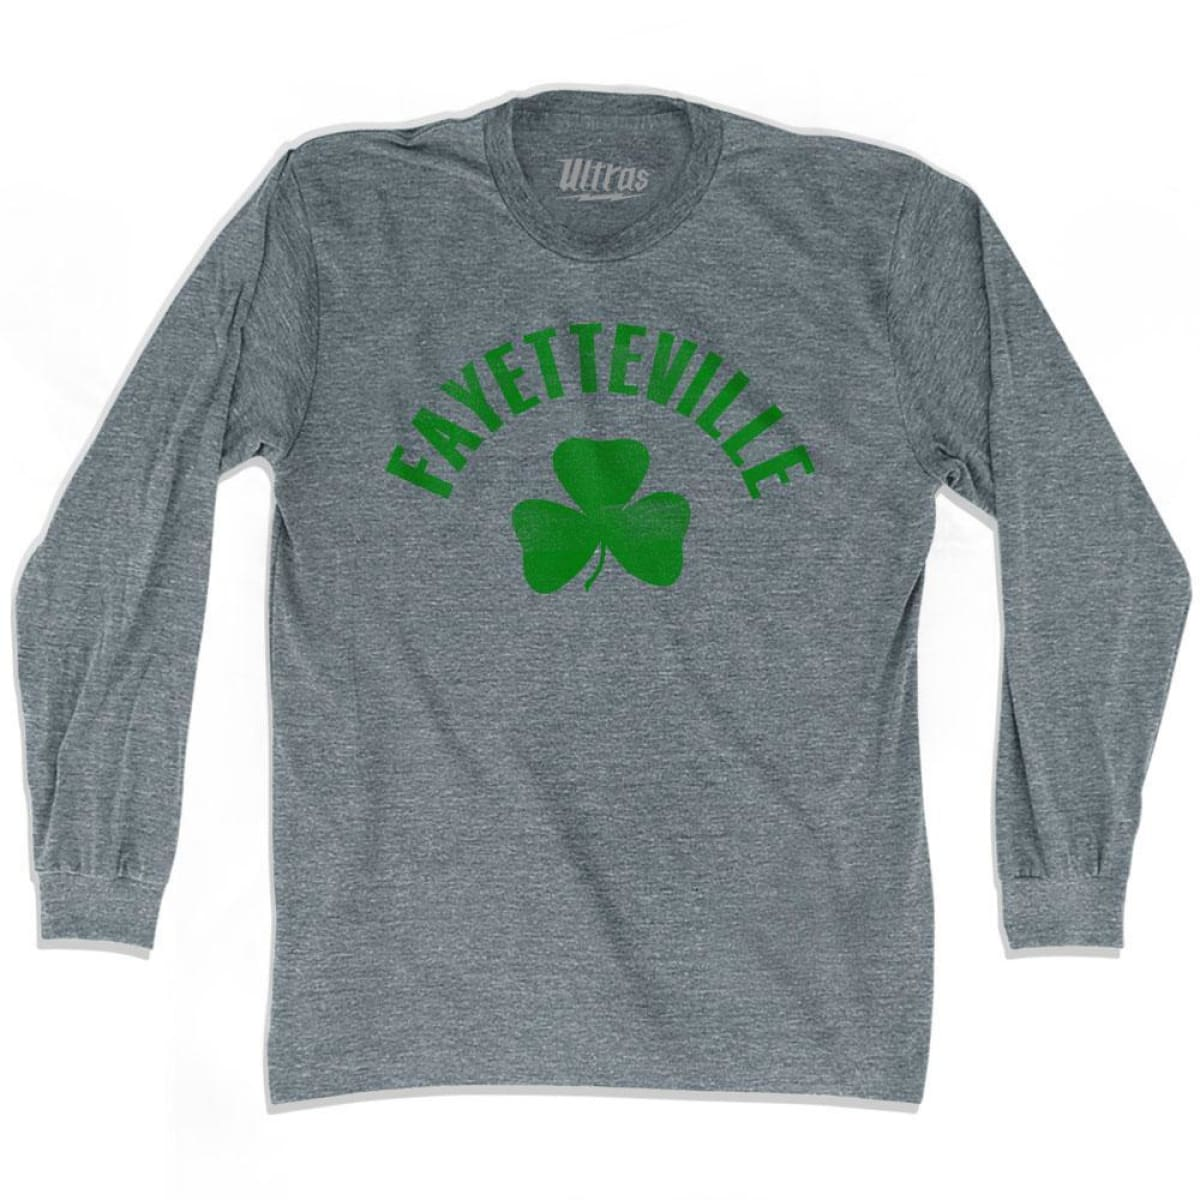 Fayetteville City Shamrock Tri-Blend Long Sleeve T-shirt - Athletic Grey / Adult Small - Shamrock Collection